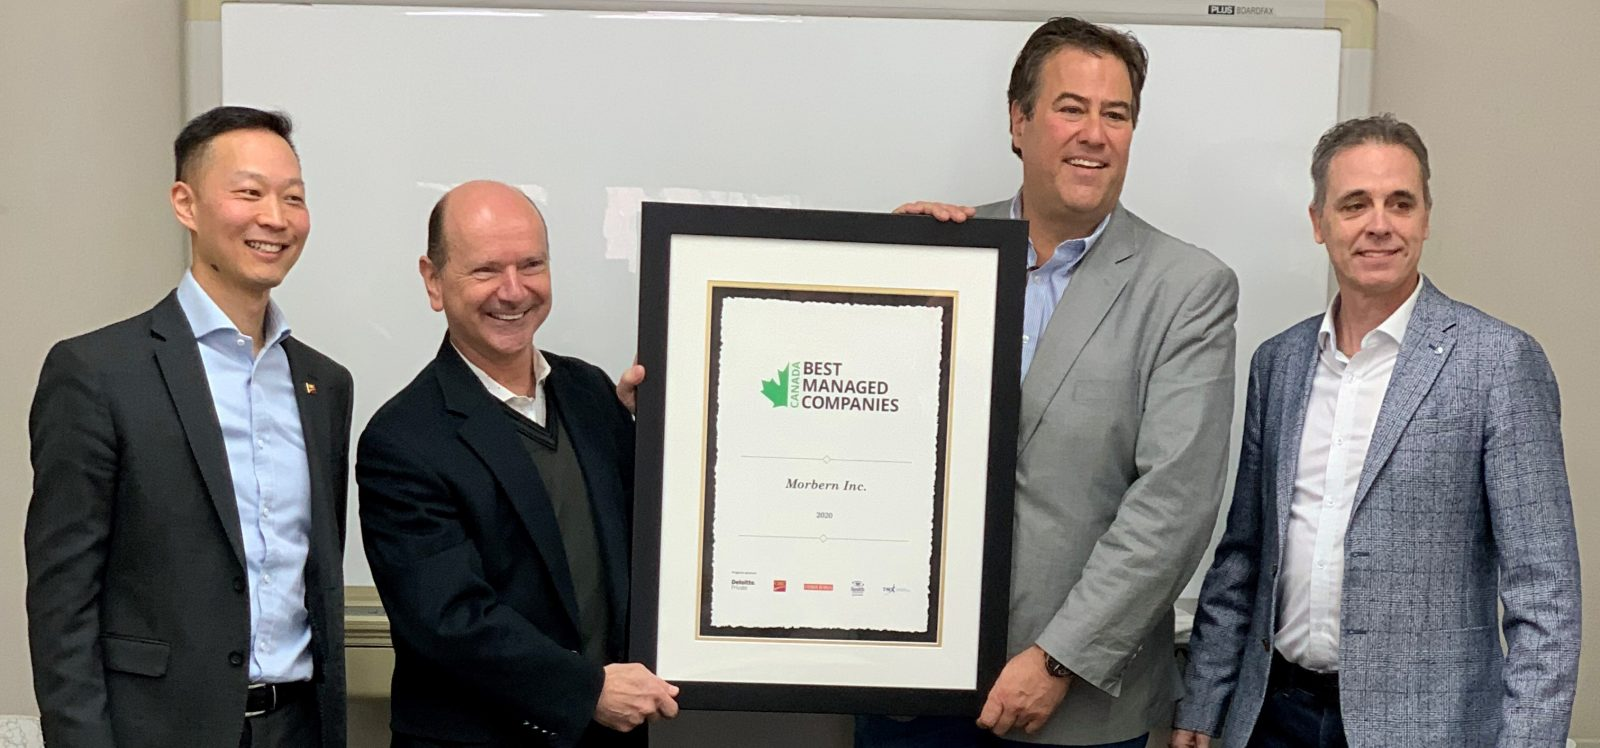 Morbern named one of Canada's best managed companies second year running